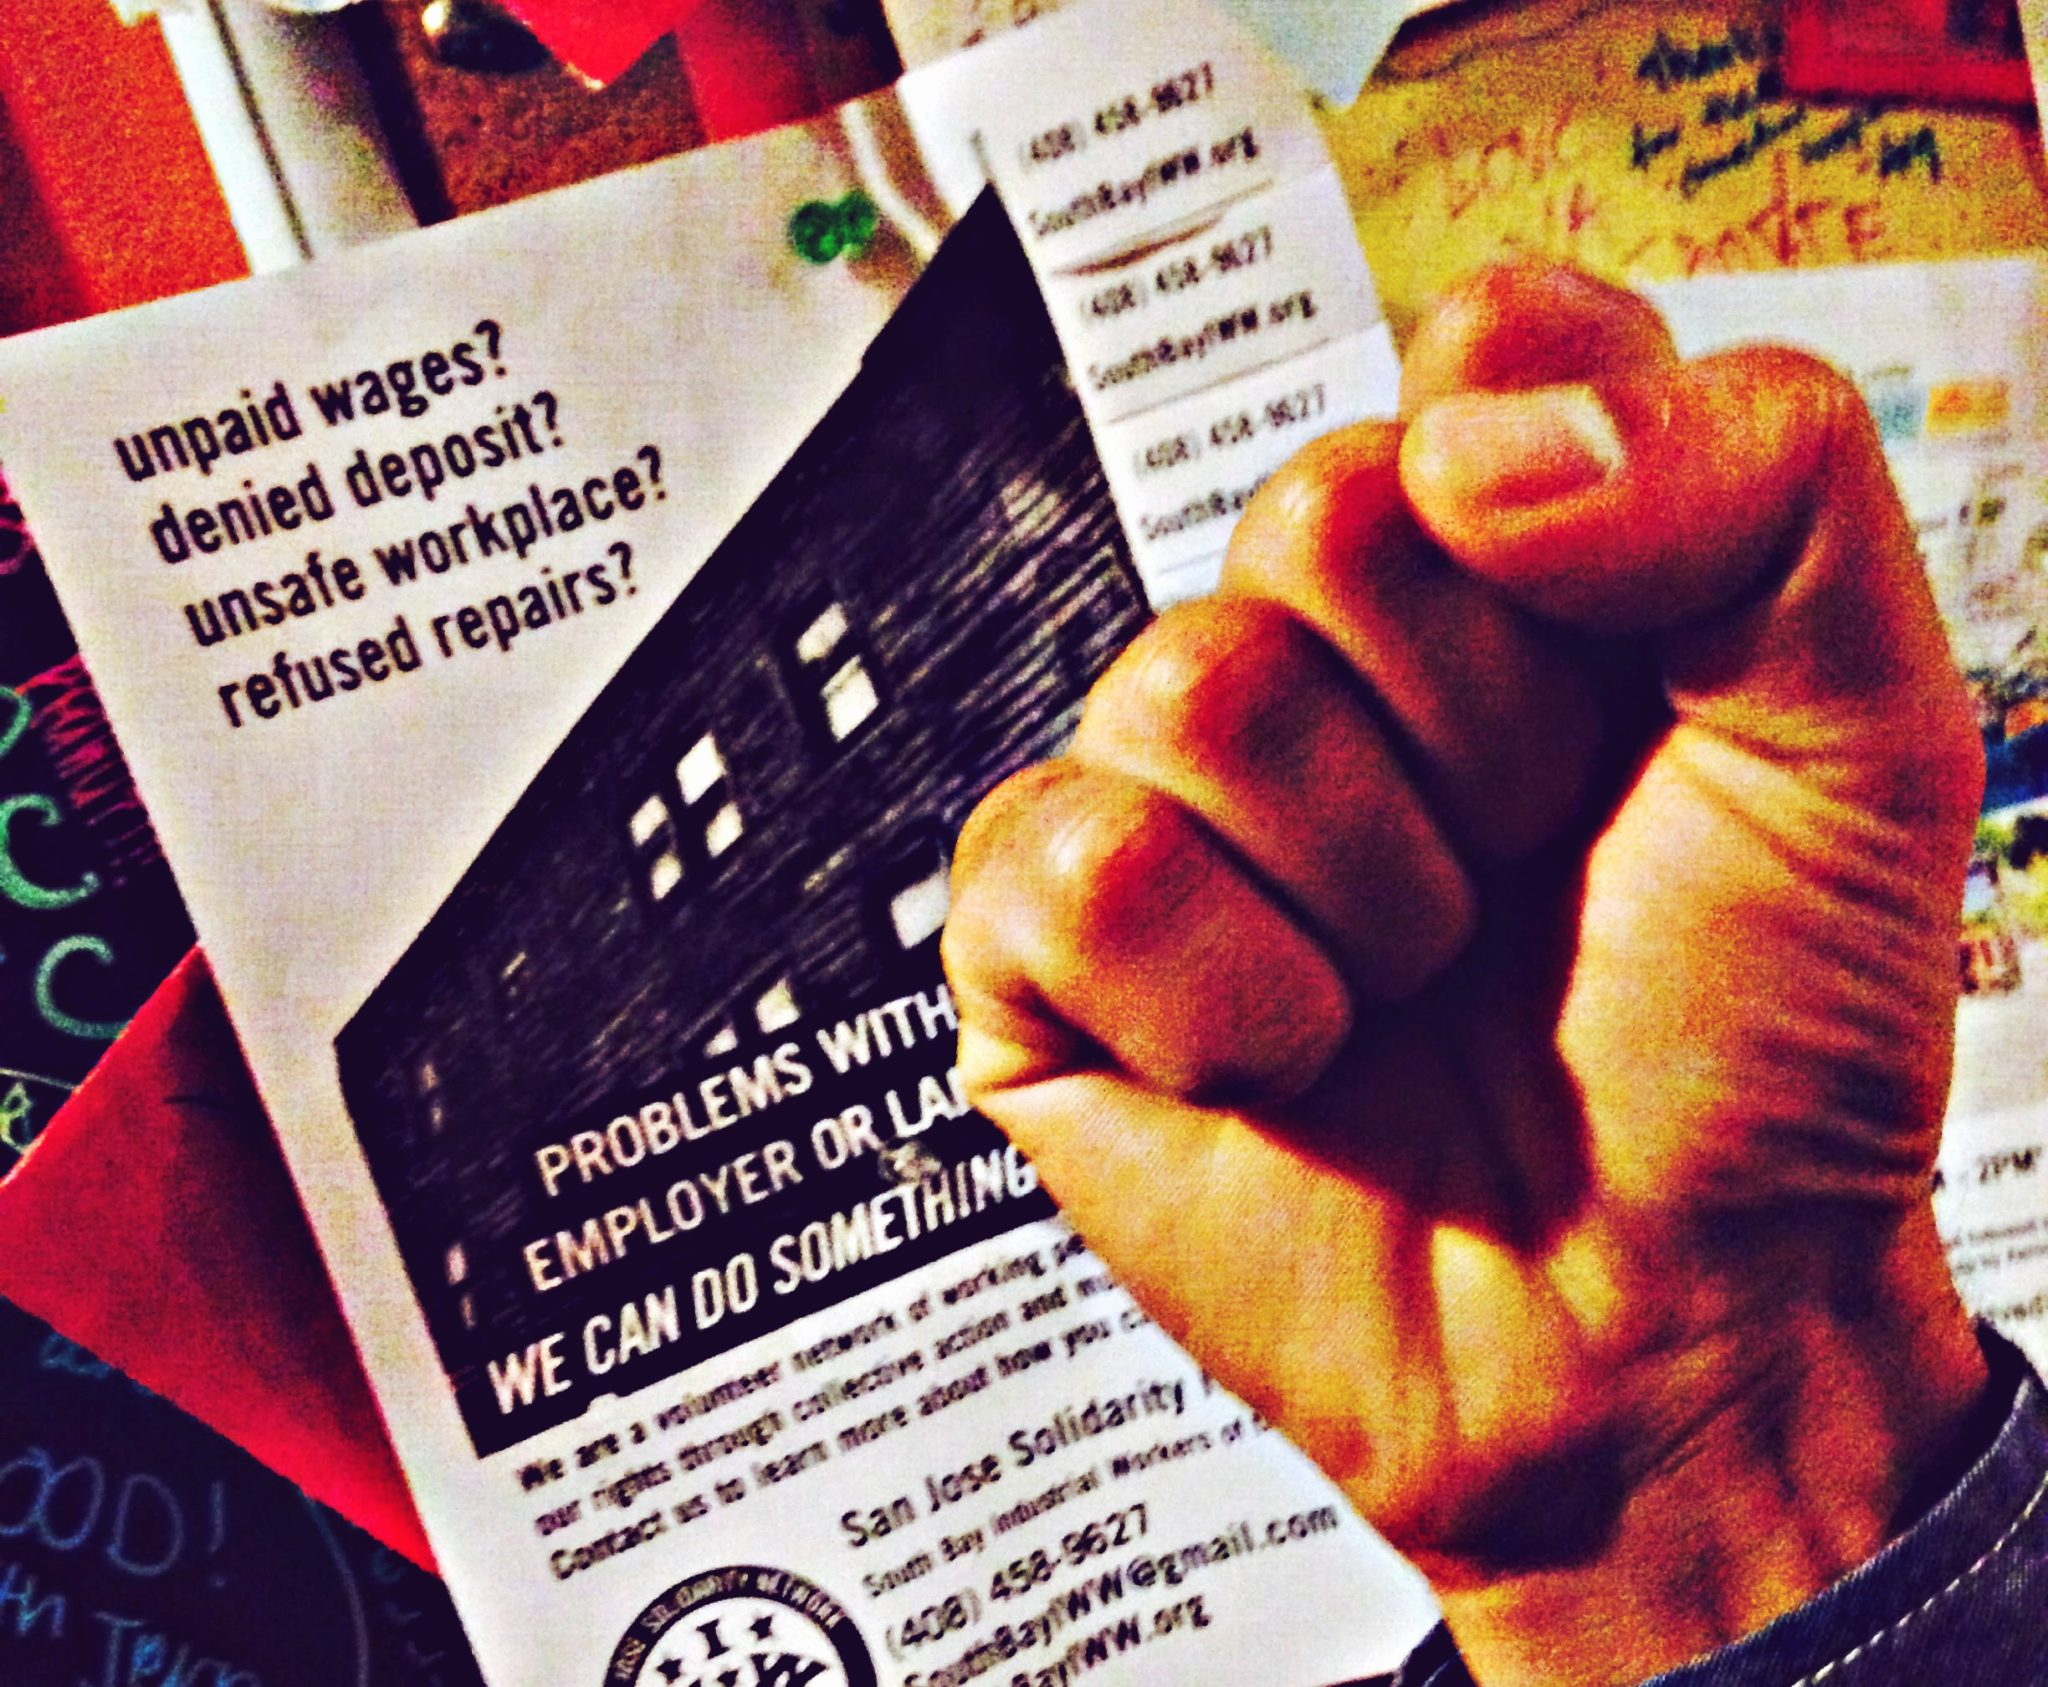 Solidarity network flyer with fist in front